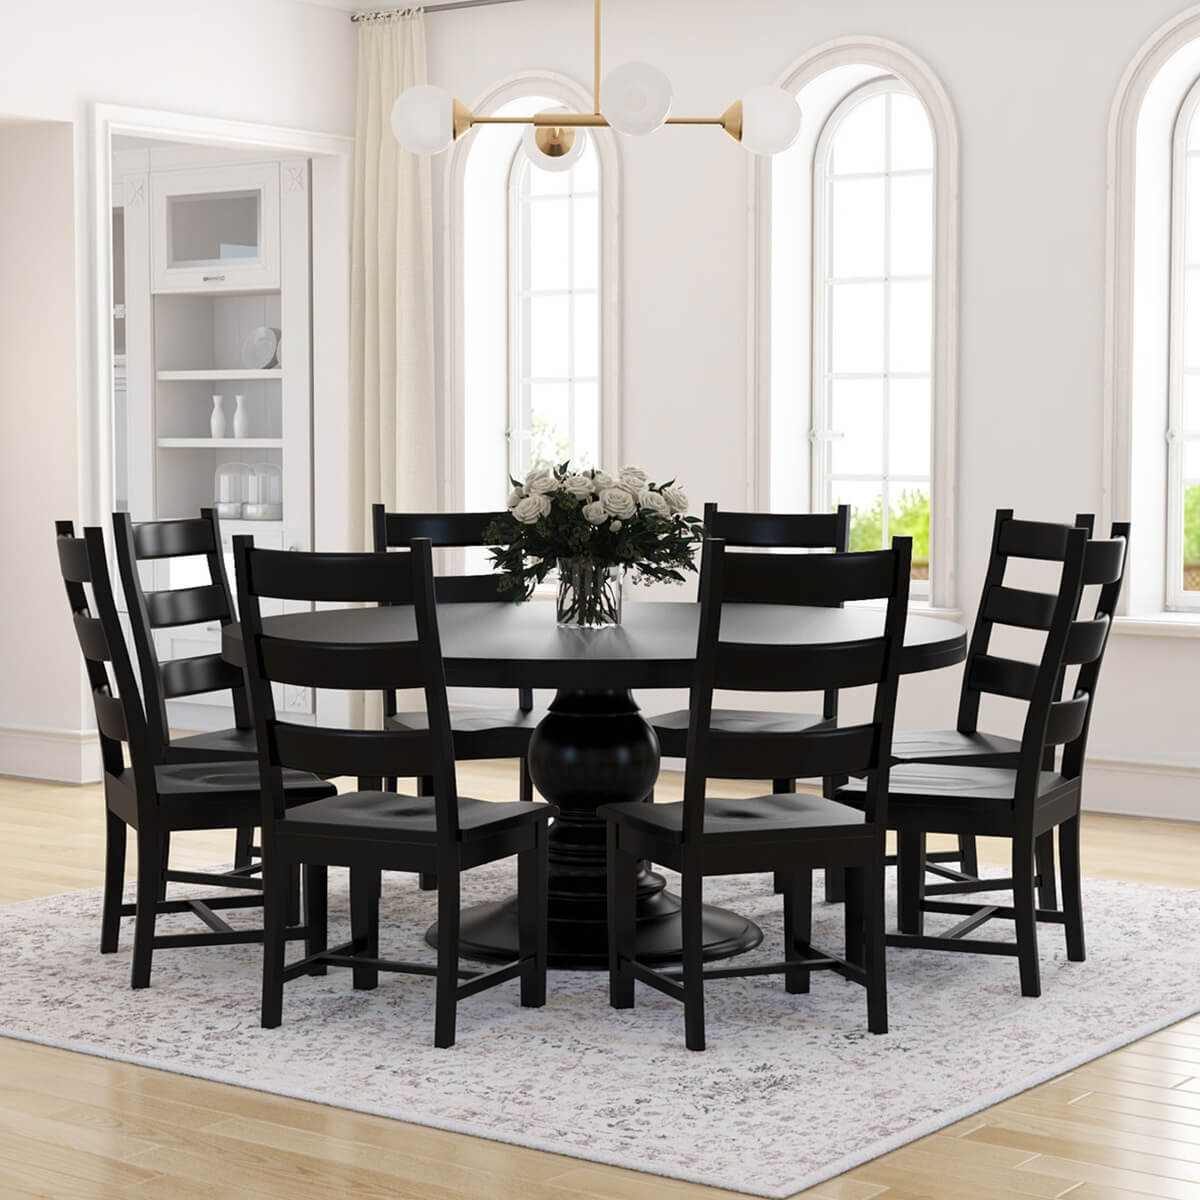 Round Breakfast Table Set: Nottingham Rustic Solid Wood Black Round Dining Room Table Set